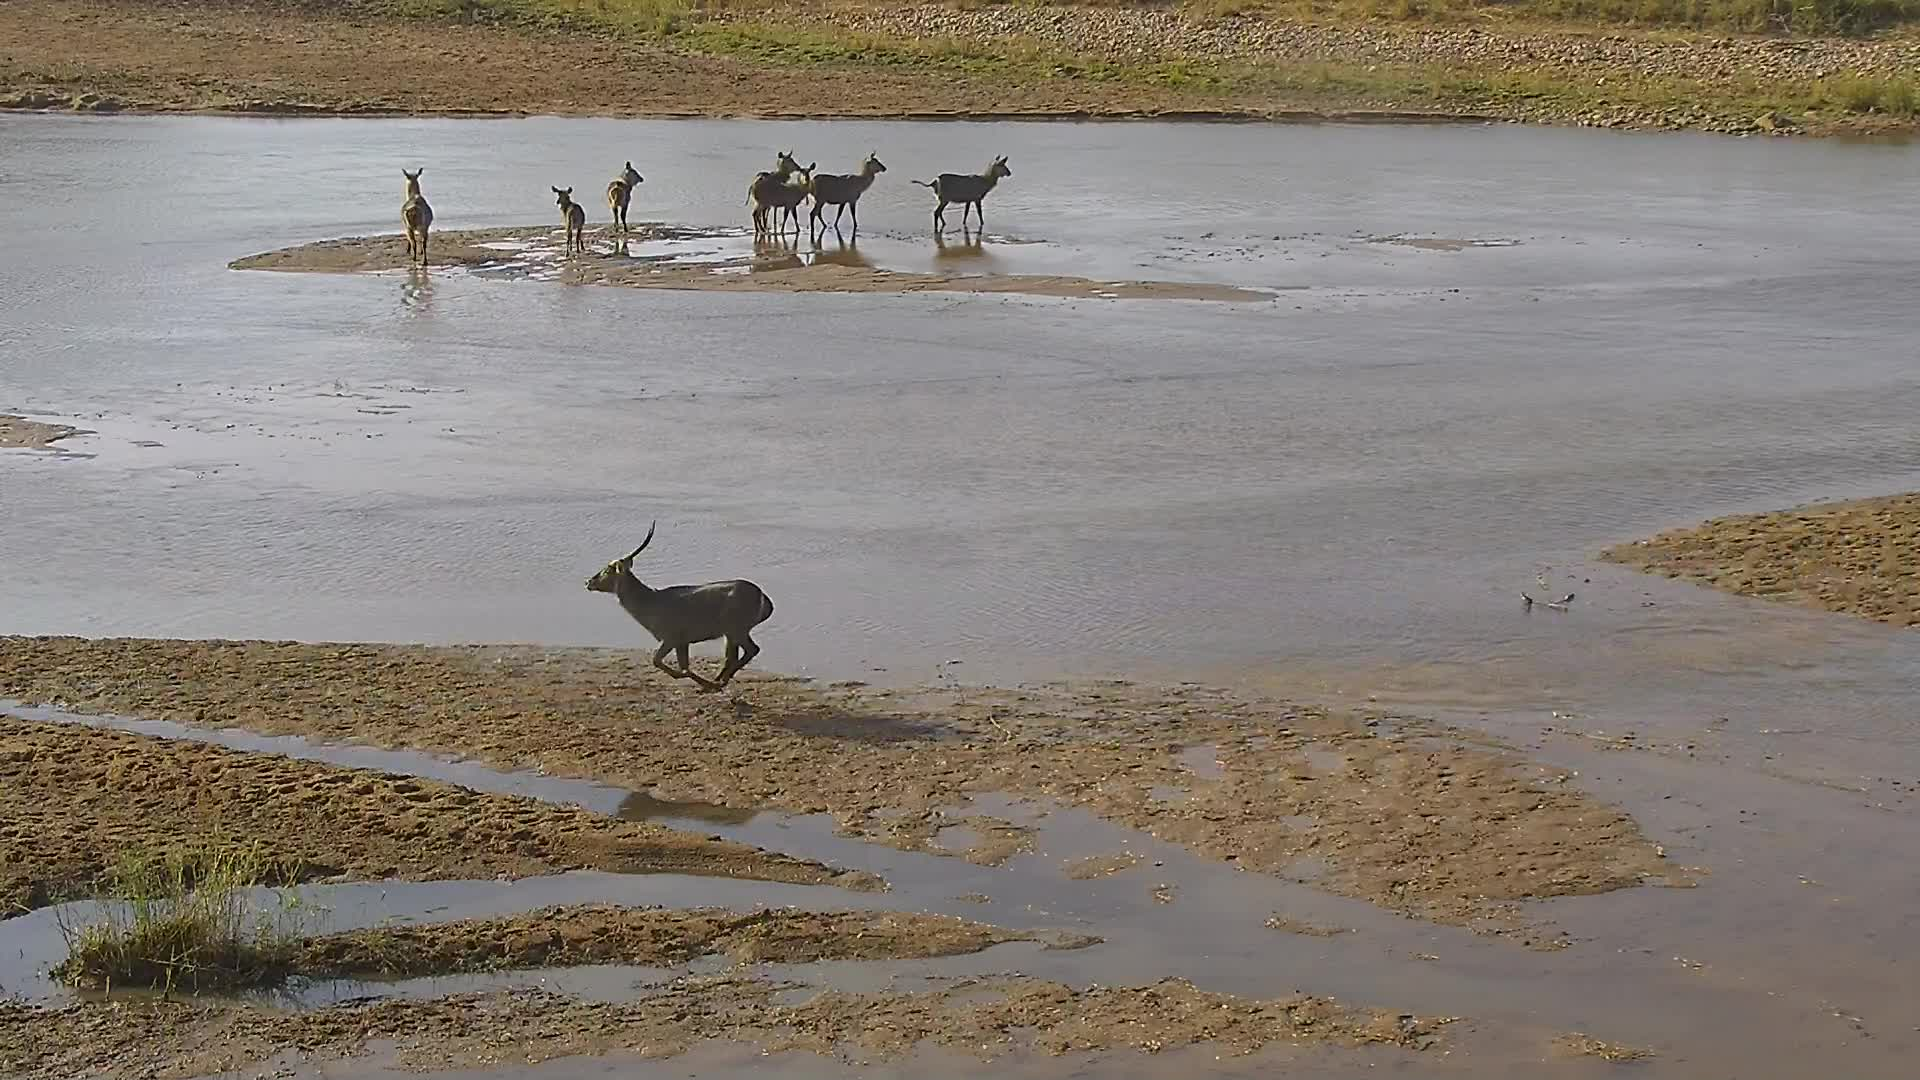 VIDEO: Waterbucks try to cross the river, they jump from sandbank to sandbank